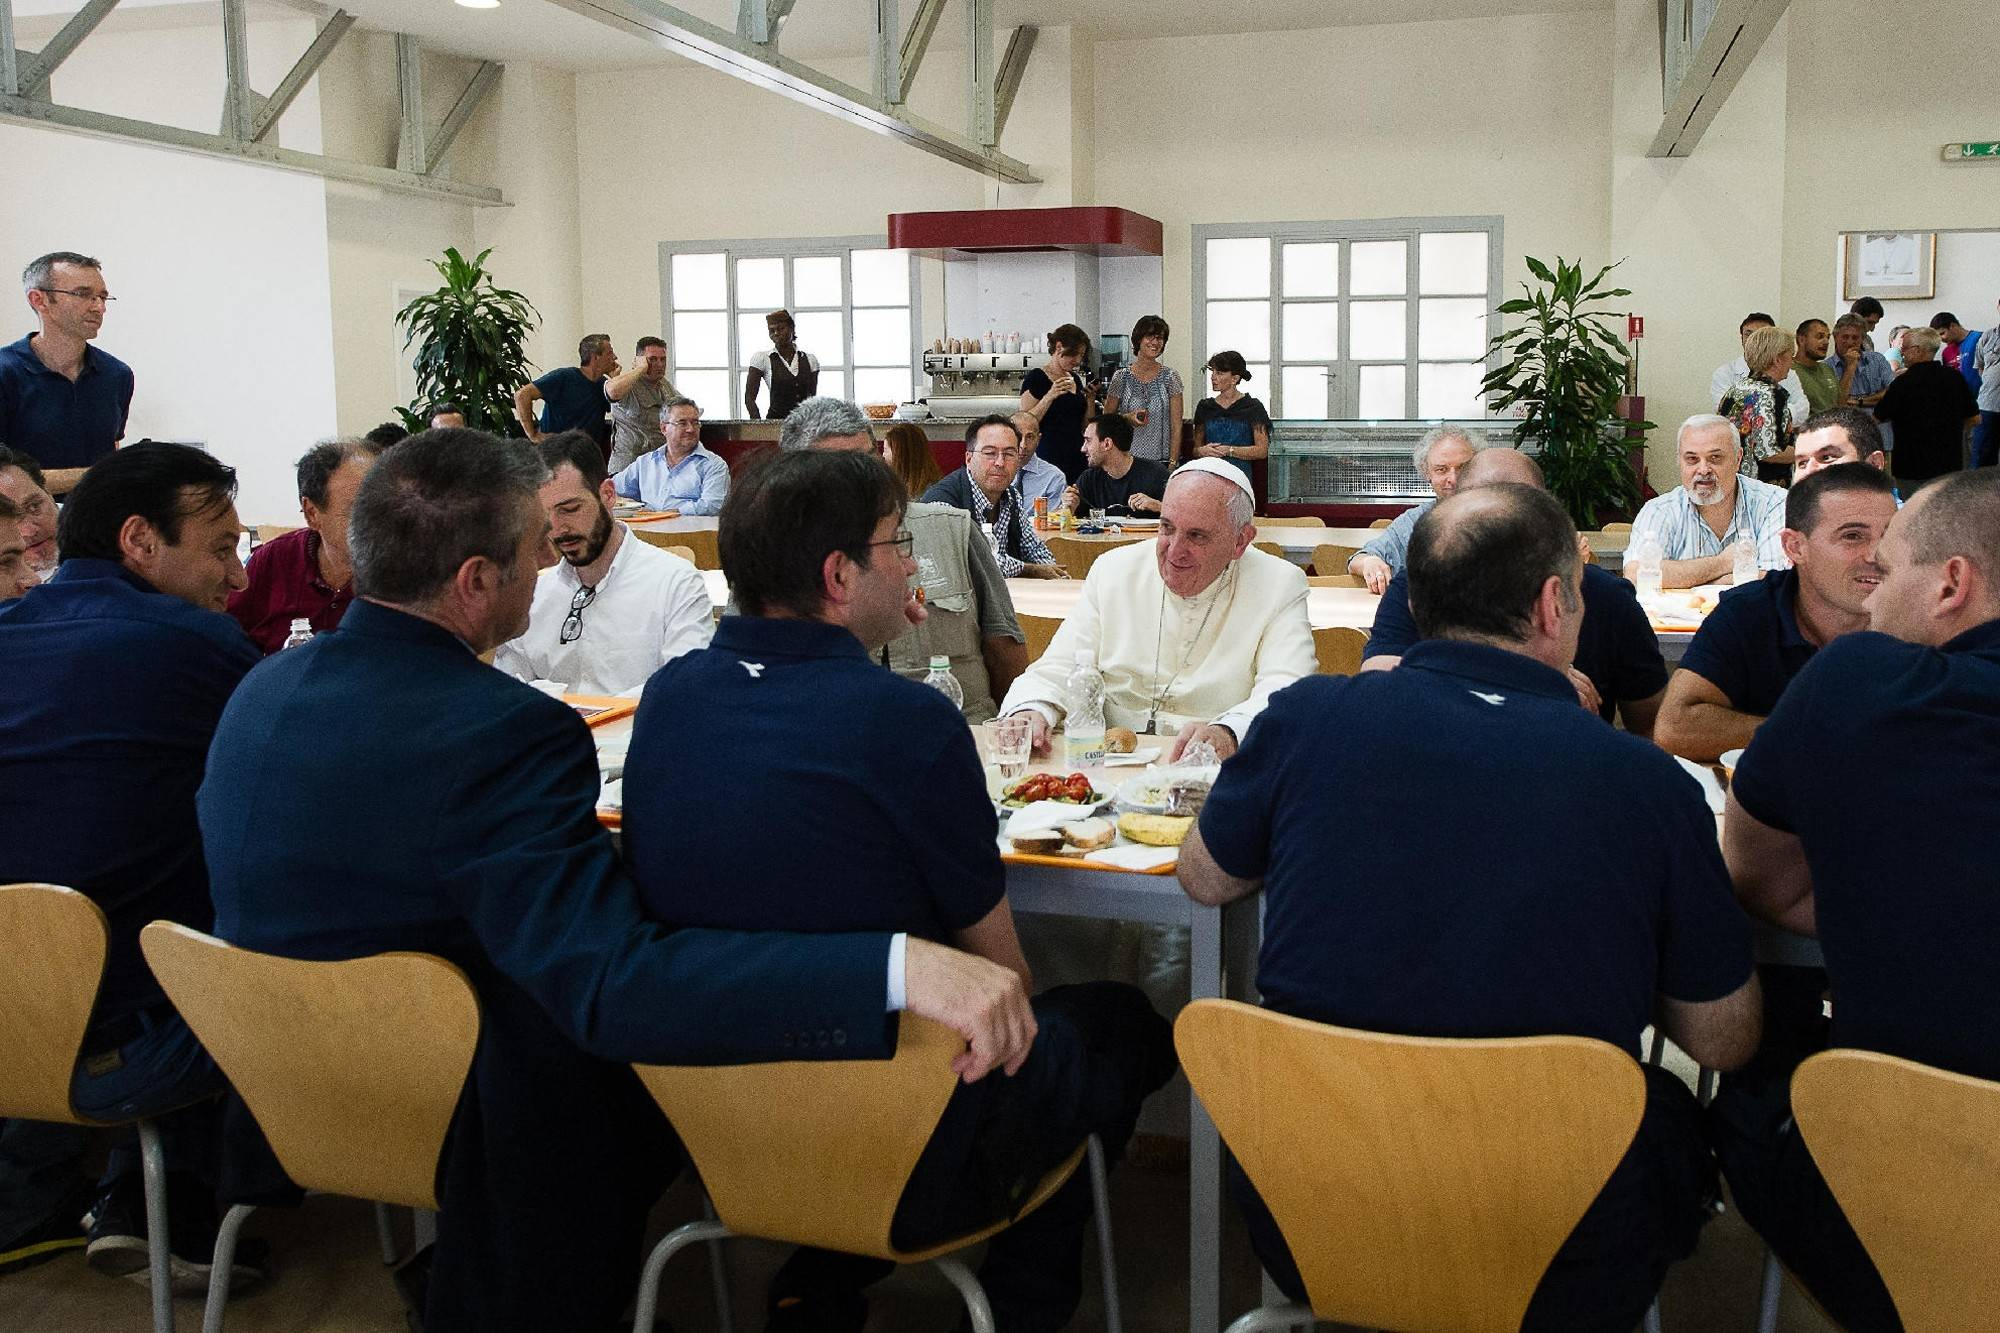 Associated Press Pope Francis popped in unannounced at the Vatican workers' cafeteria Friday and lined up, tray in hand, along with stunned diners.